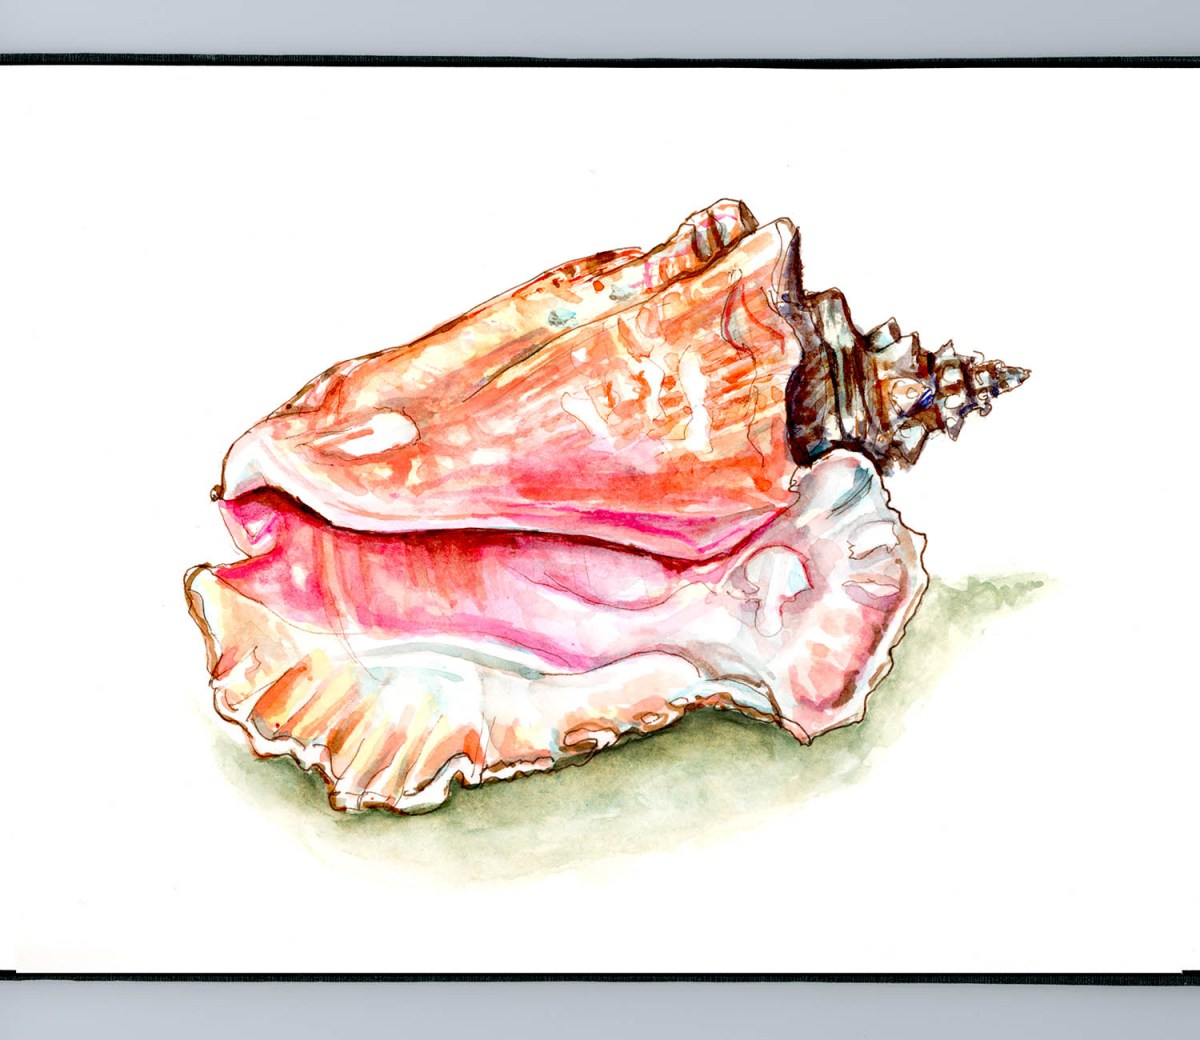 #WorldWatercolorGroup - Day 23 - Seashells By The Seashore - Conch Shell - Doodlewash